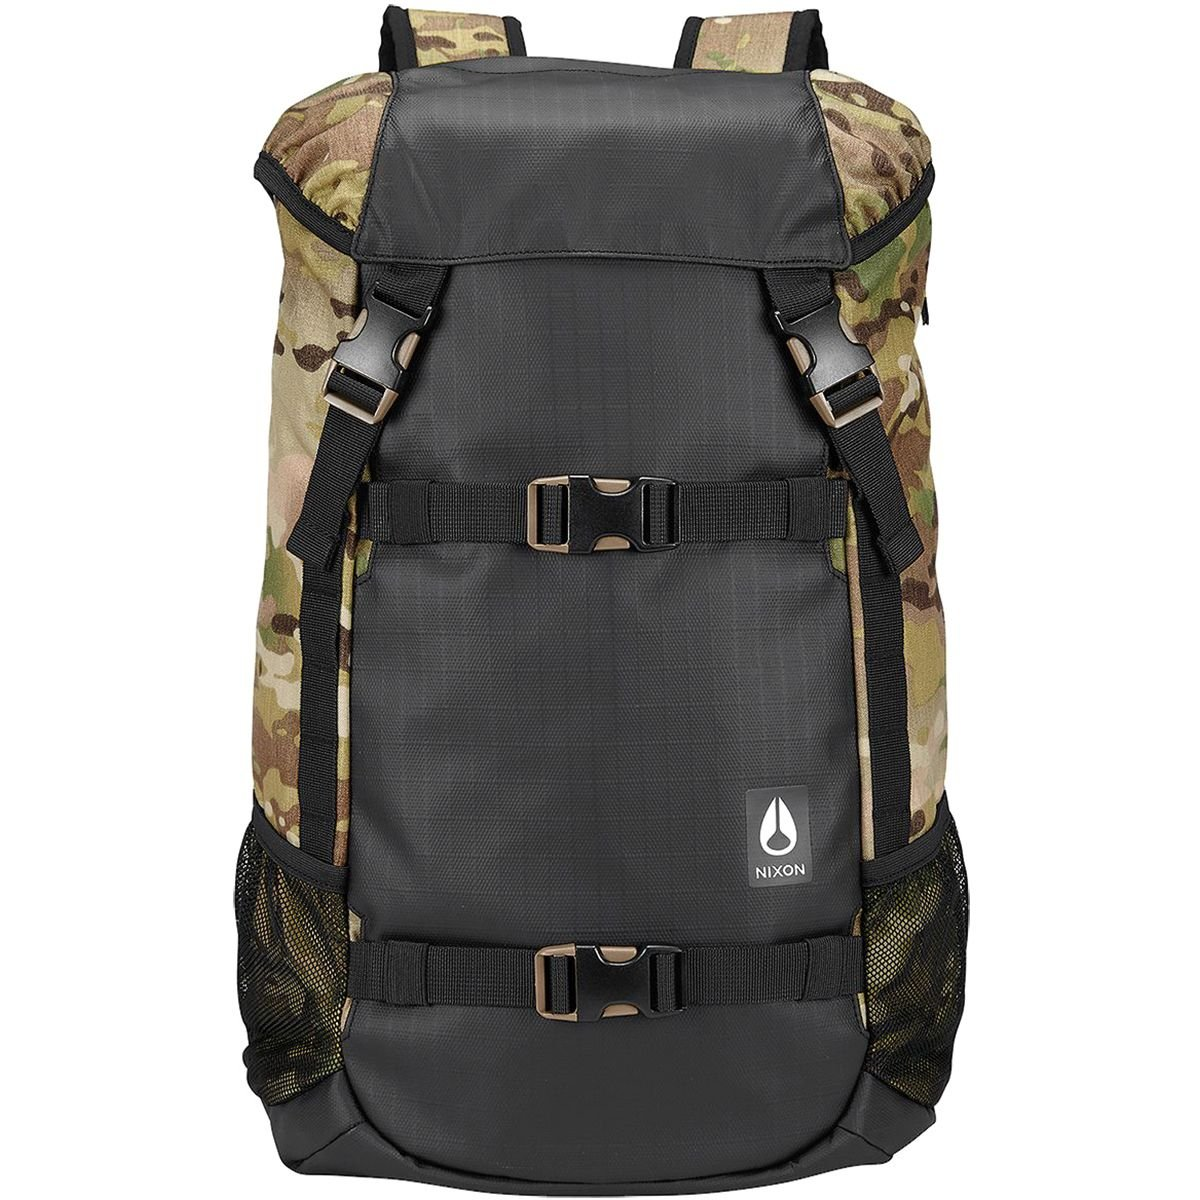 4b77aa954 Amazon.com | Nixon Unisex Landlock III Backpack Concrete One Size | Casual  Daypacks